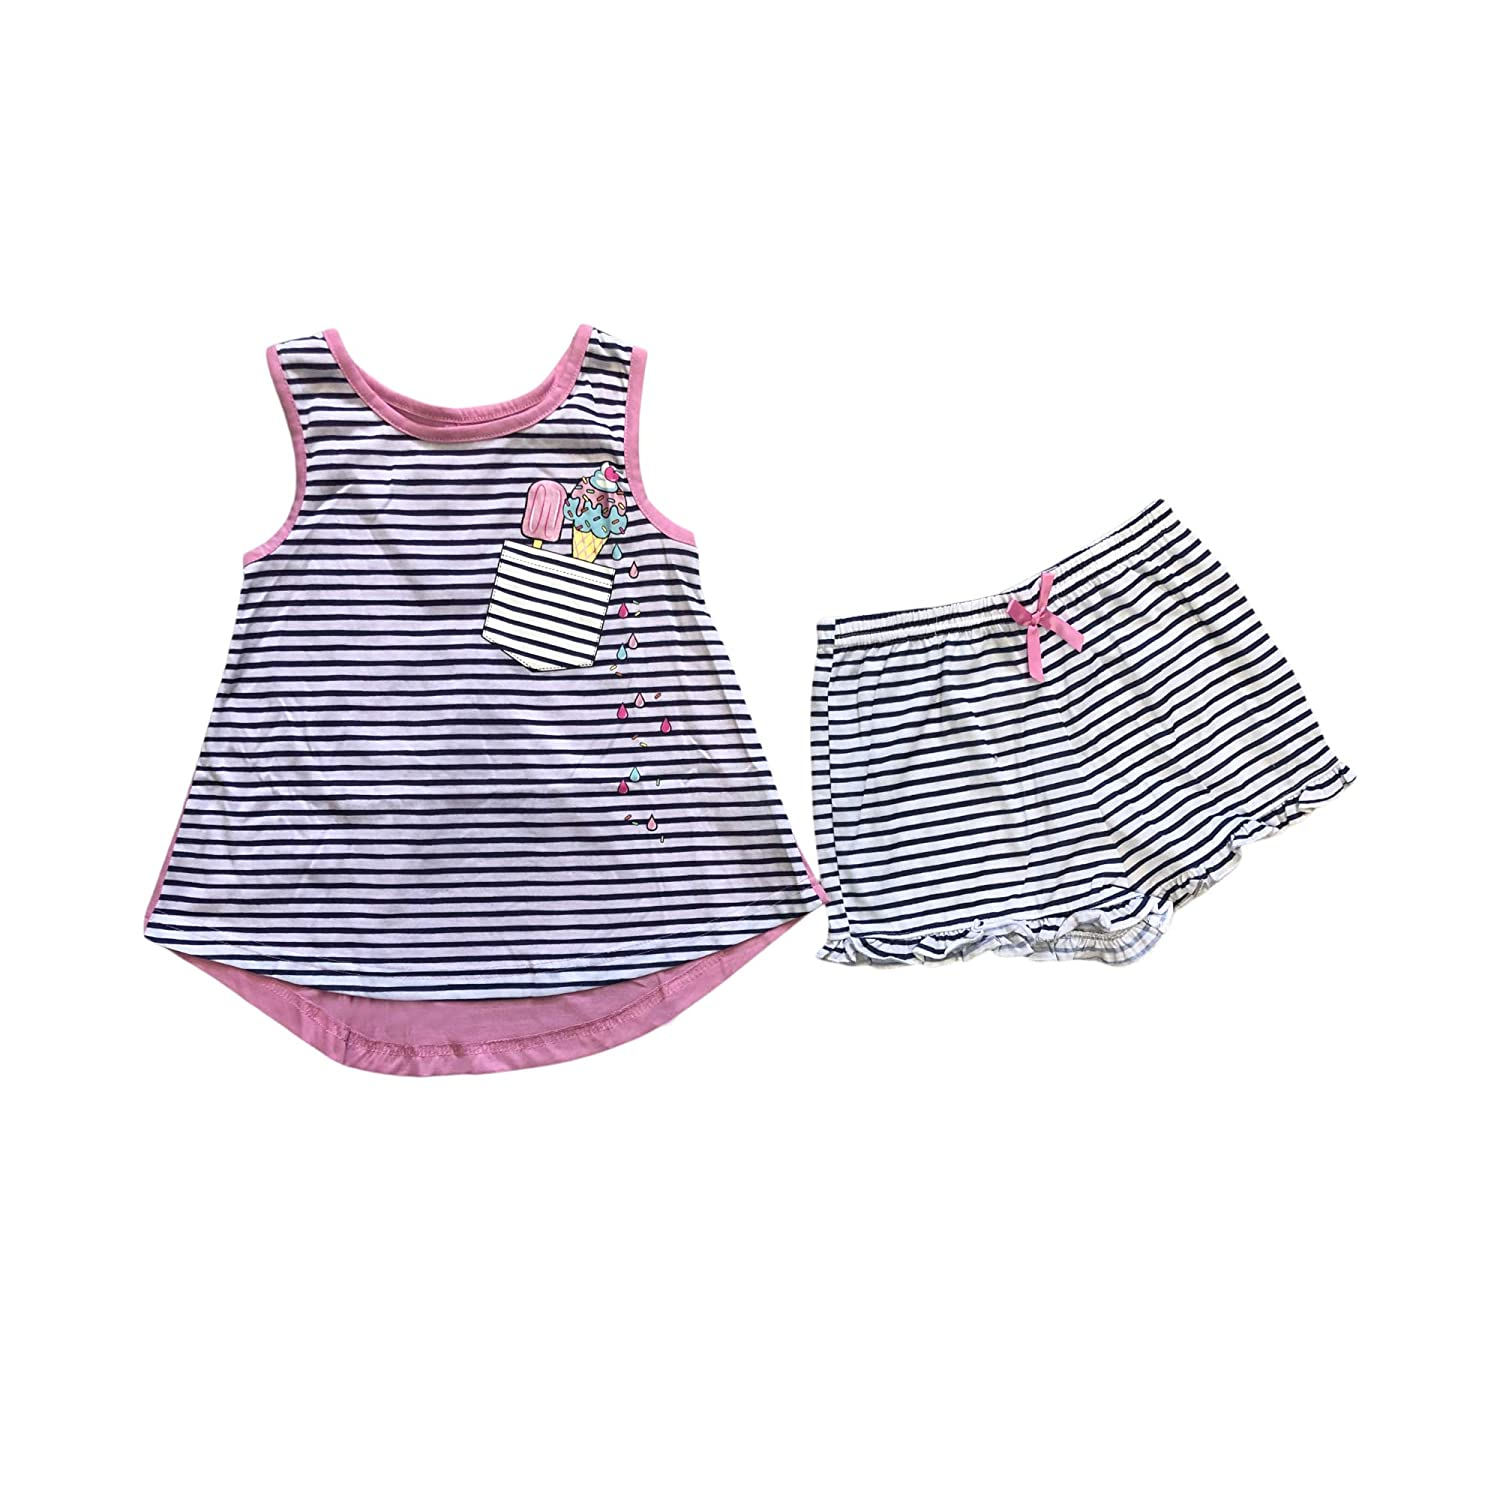 Girls Navy Blue Stripped Sleeveless Ice Cream Cone and Popsicle top with Matching Ruffle Striped Shorts with Pink Bow